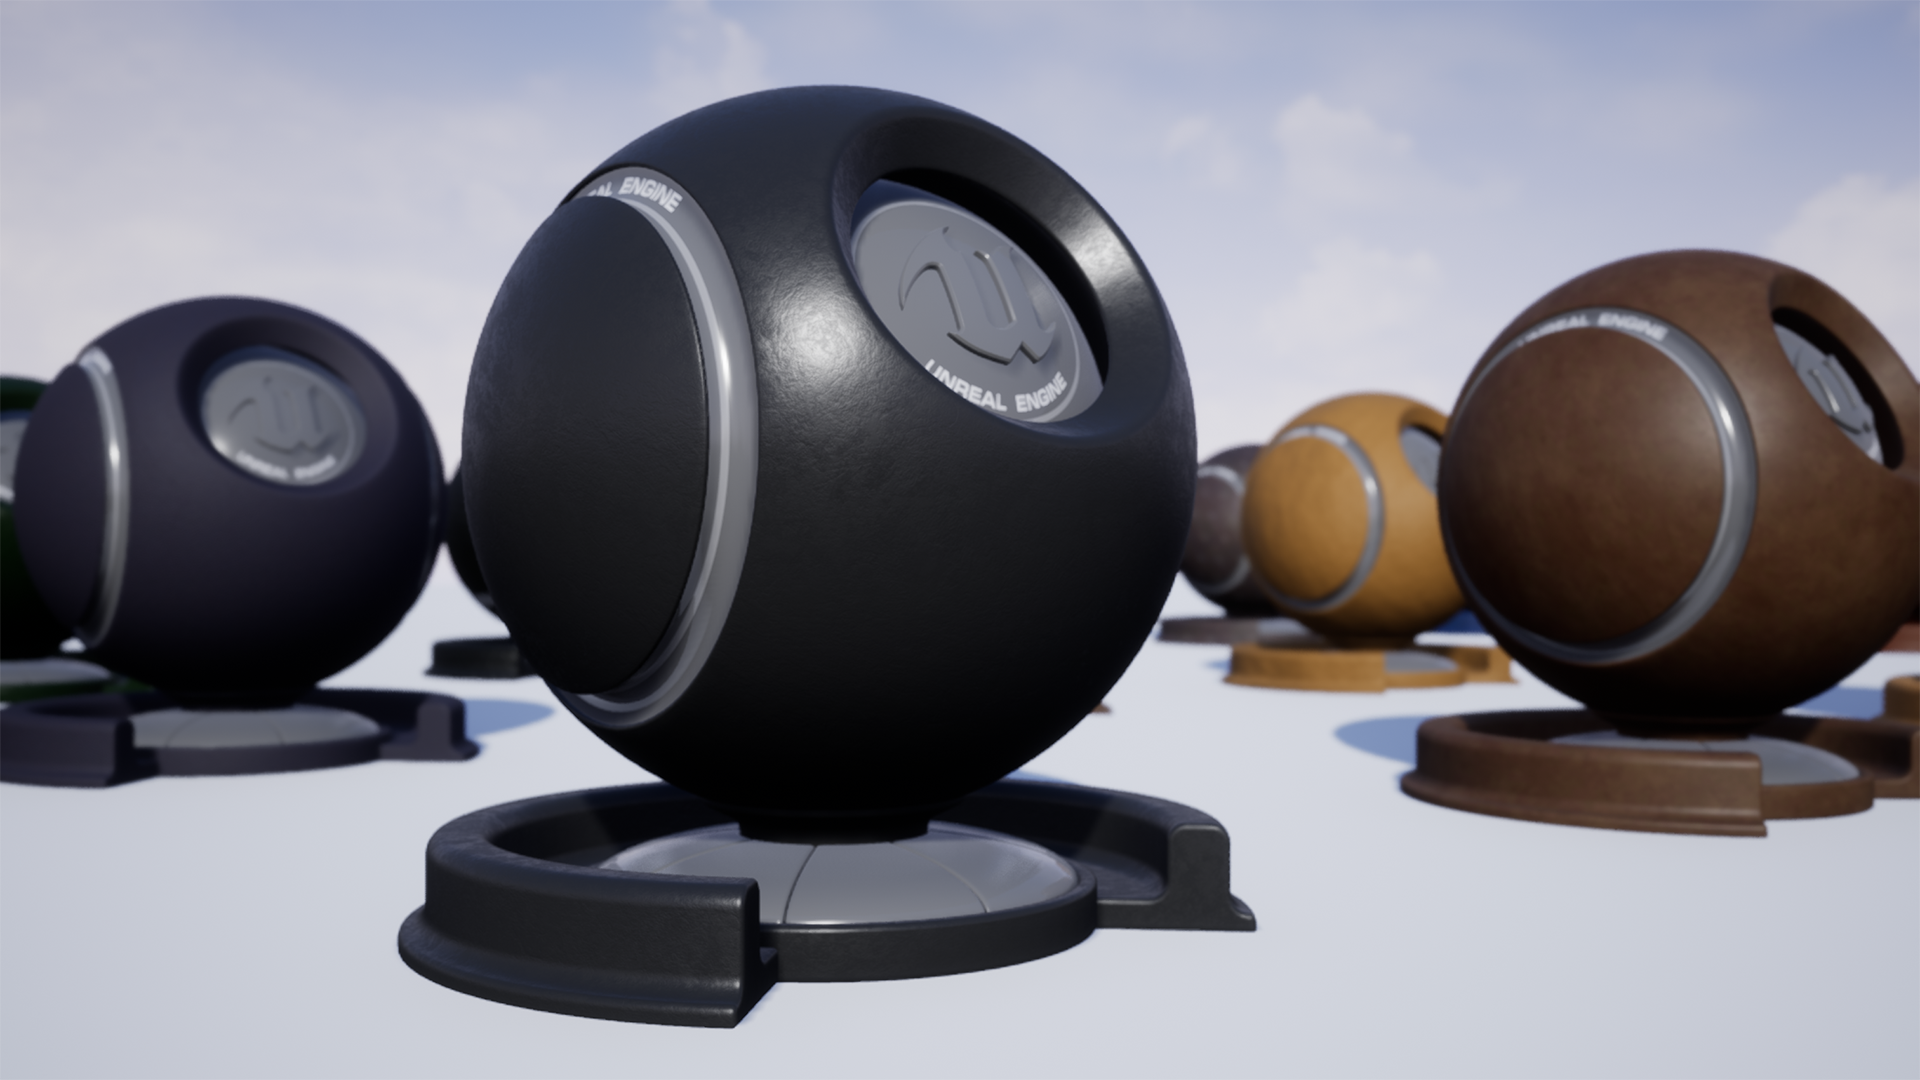 unreal engine 4 archvis materials bundle